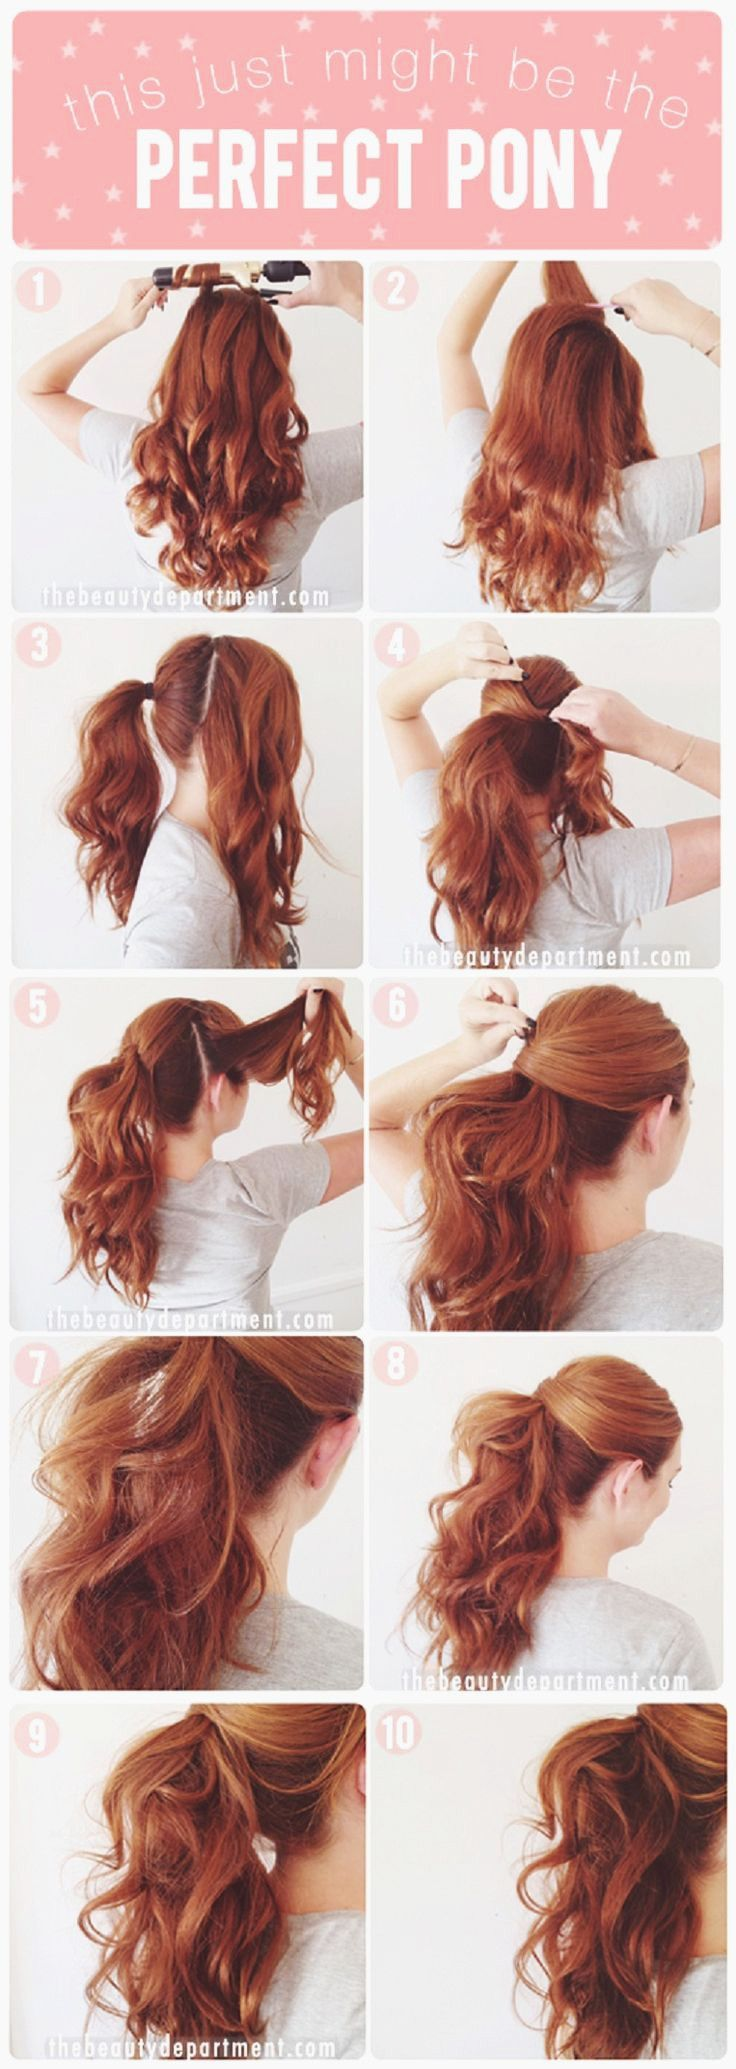 best 25+ professional long hair ideas on pinterest | all